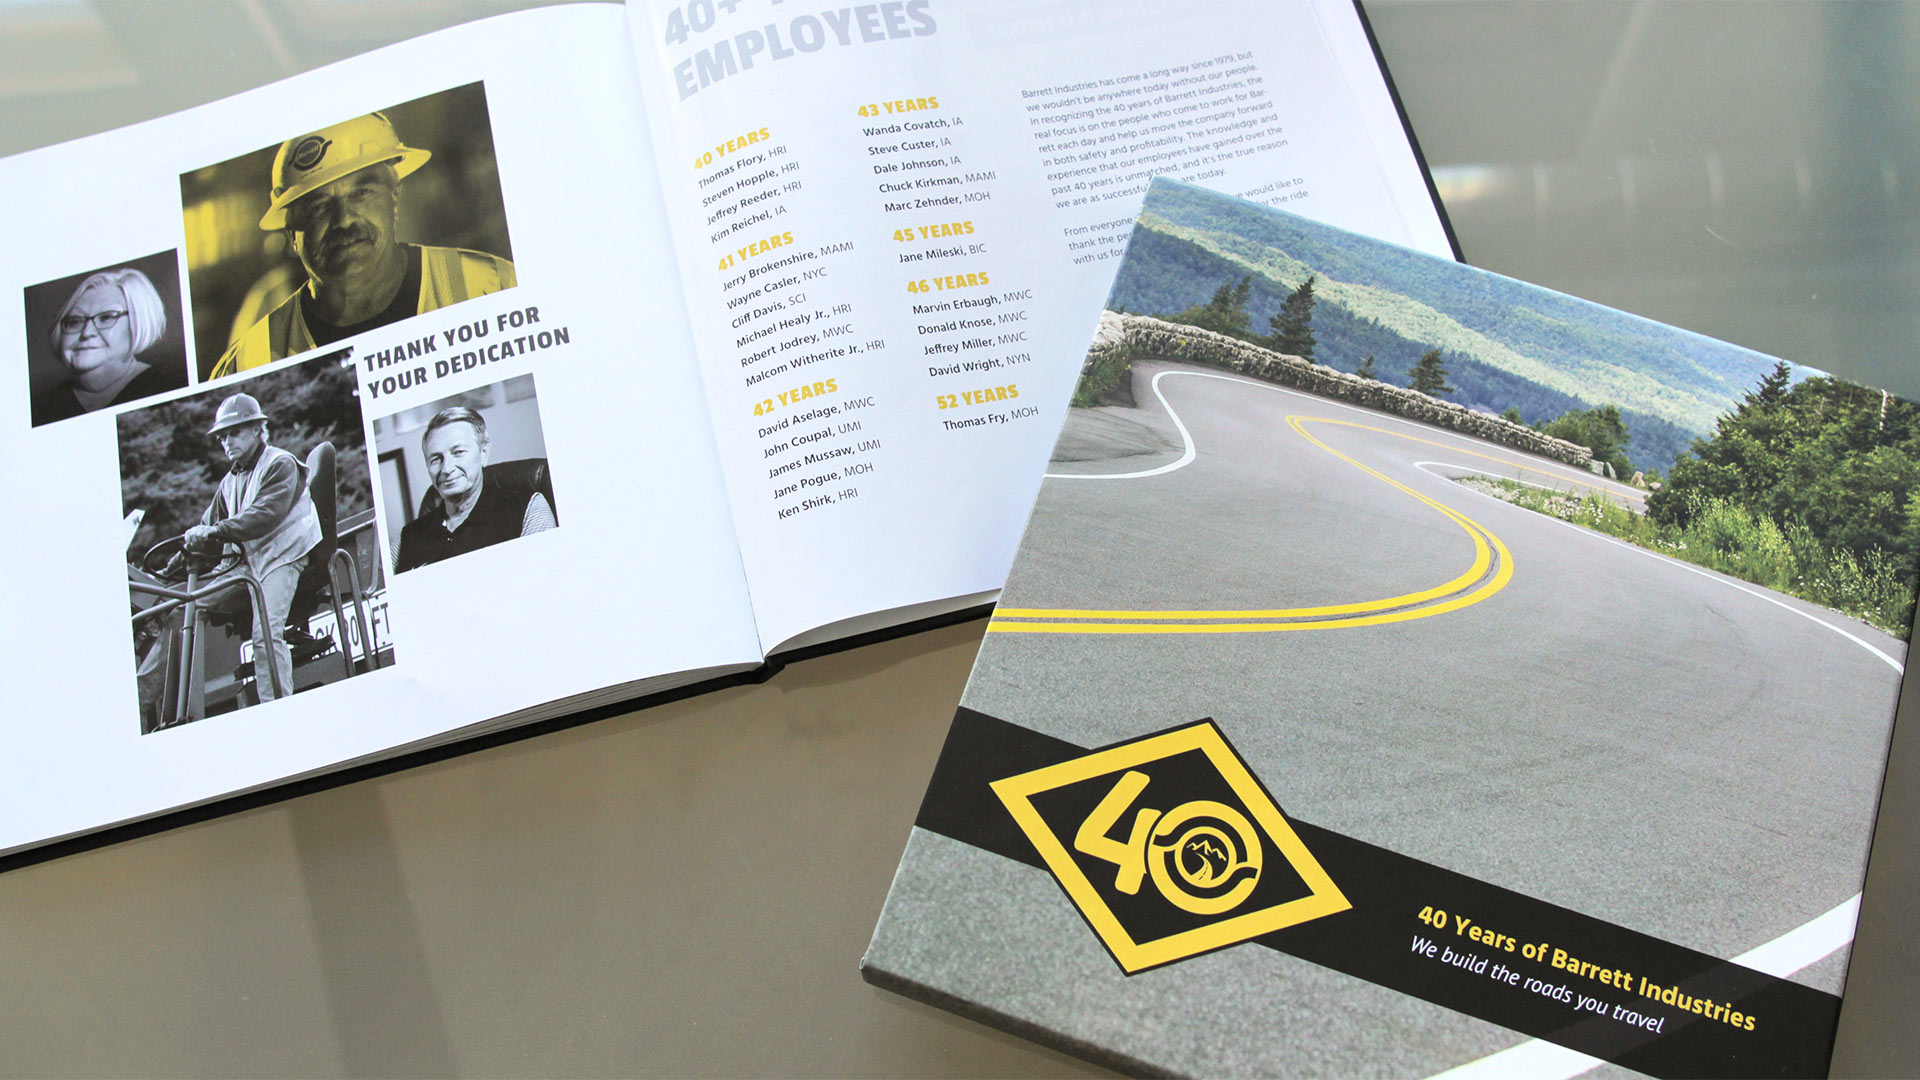 The Barrett Industries 40th Anniversary book, designed by OtherWisz, celebrates the long history of the company and its employees